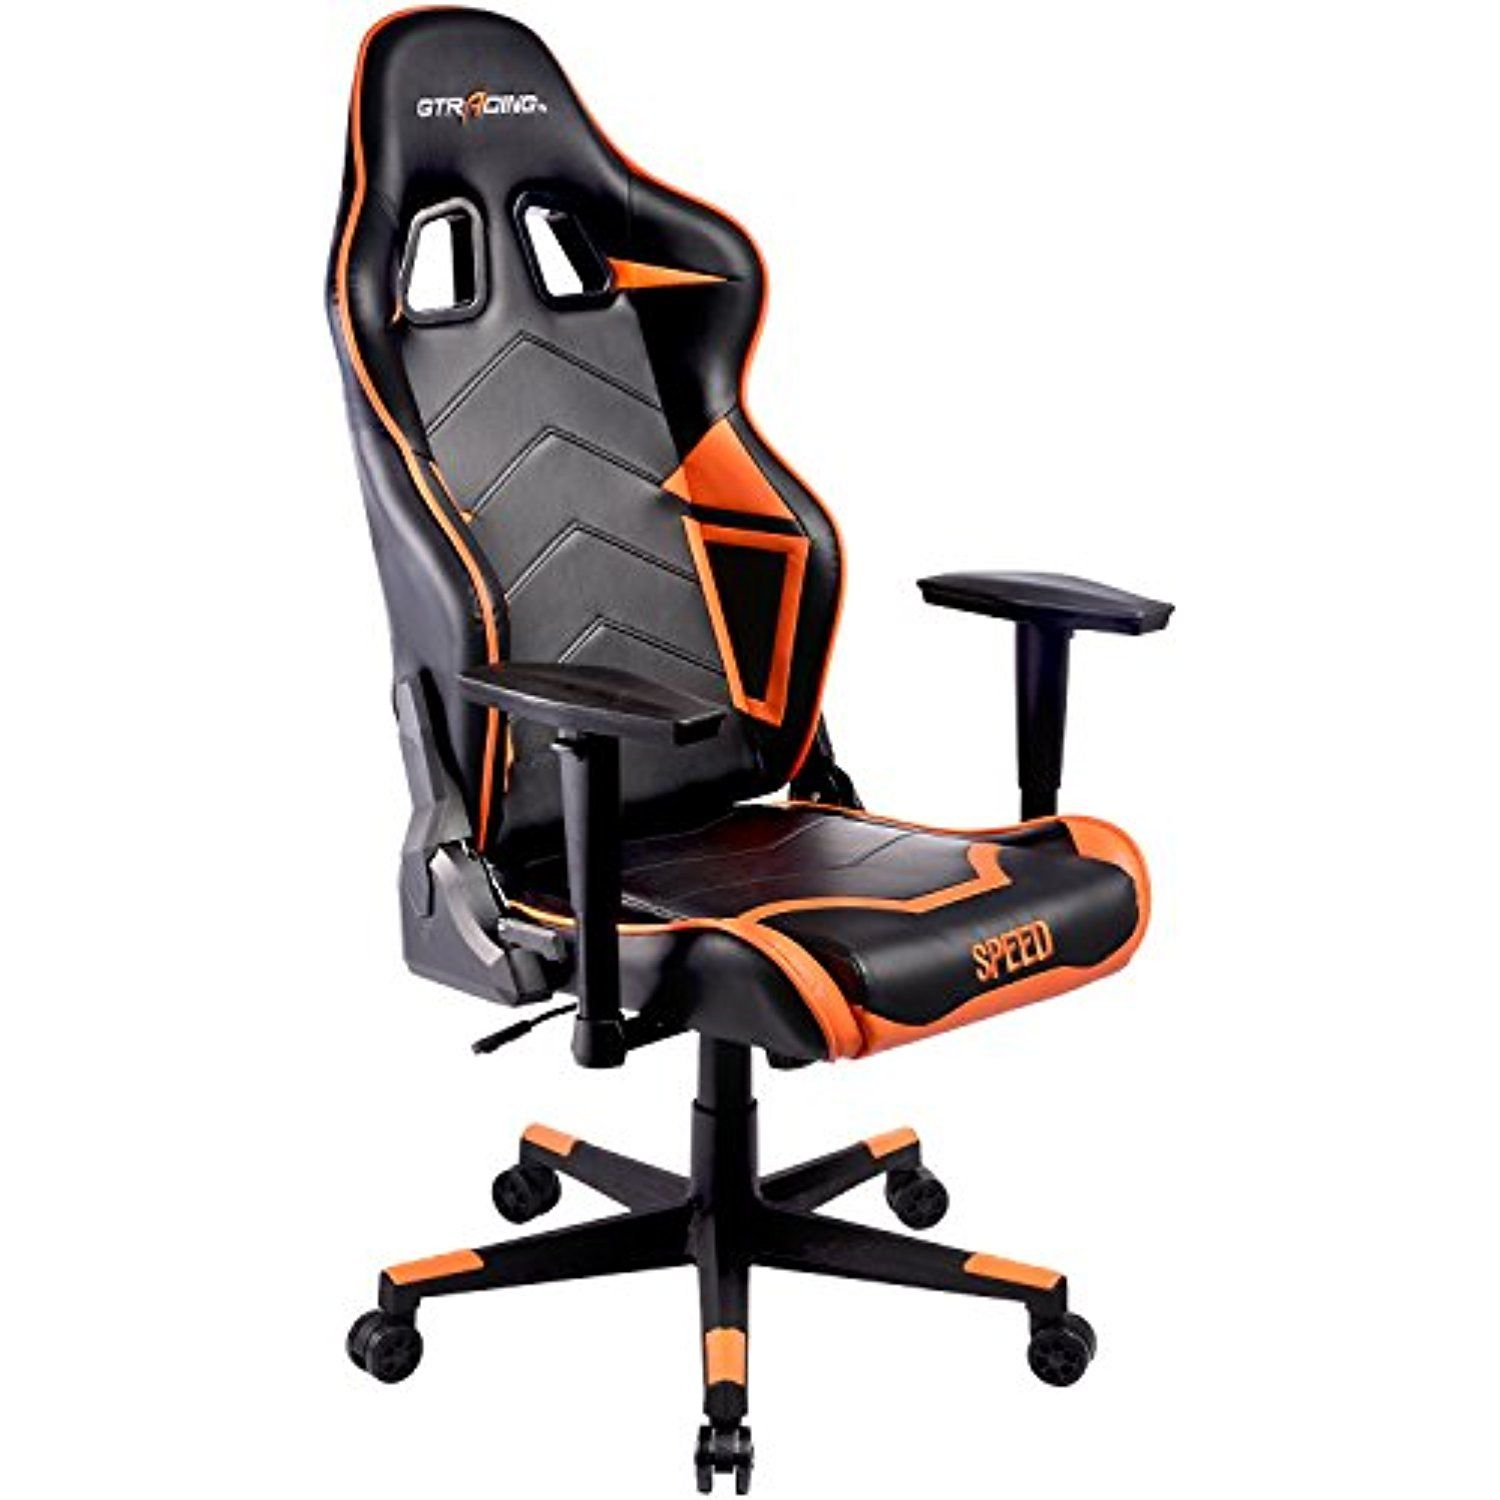 Gtracing Ergonomic Office Chair Racing Backrest And